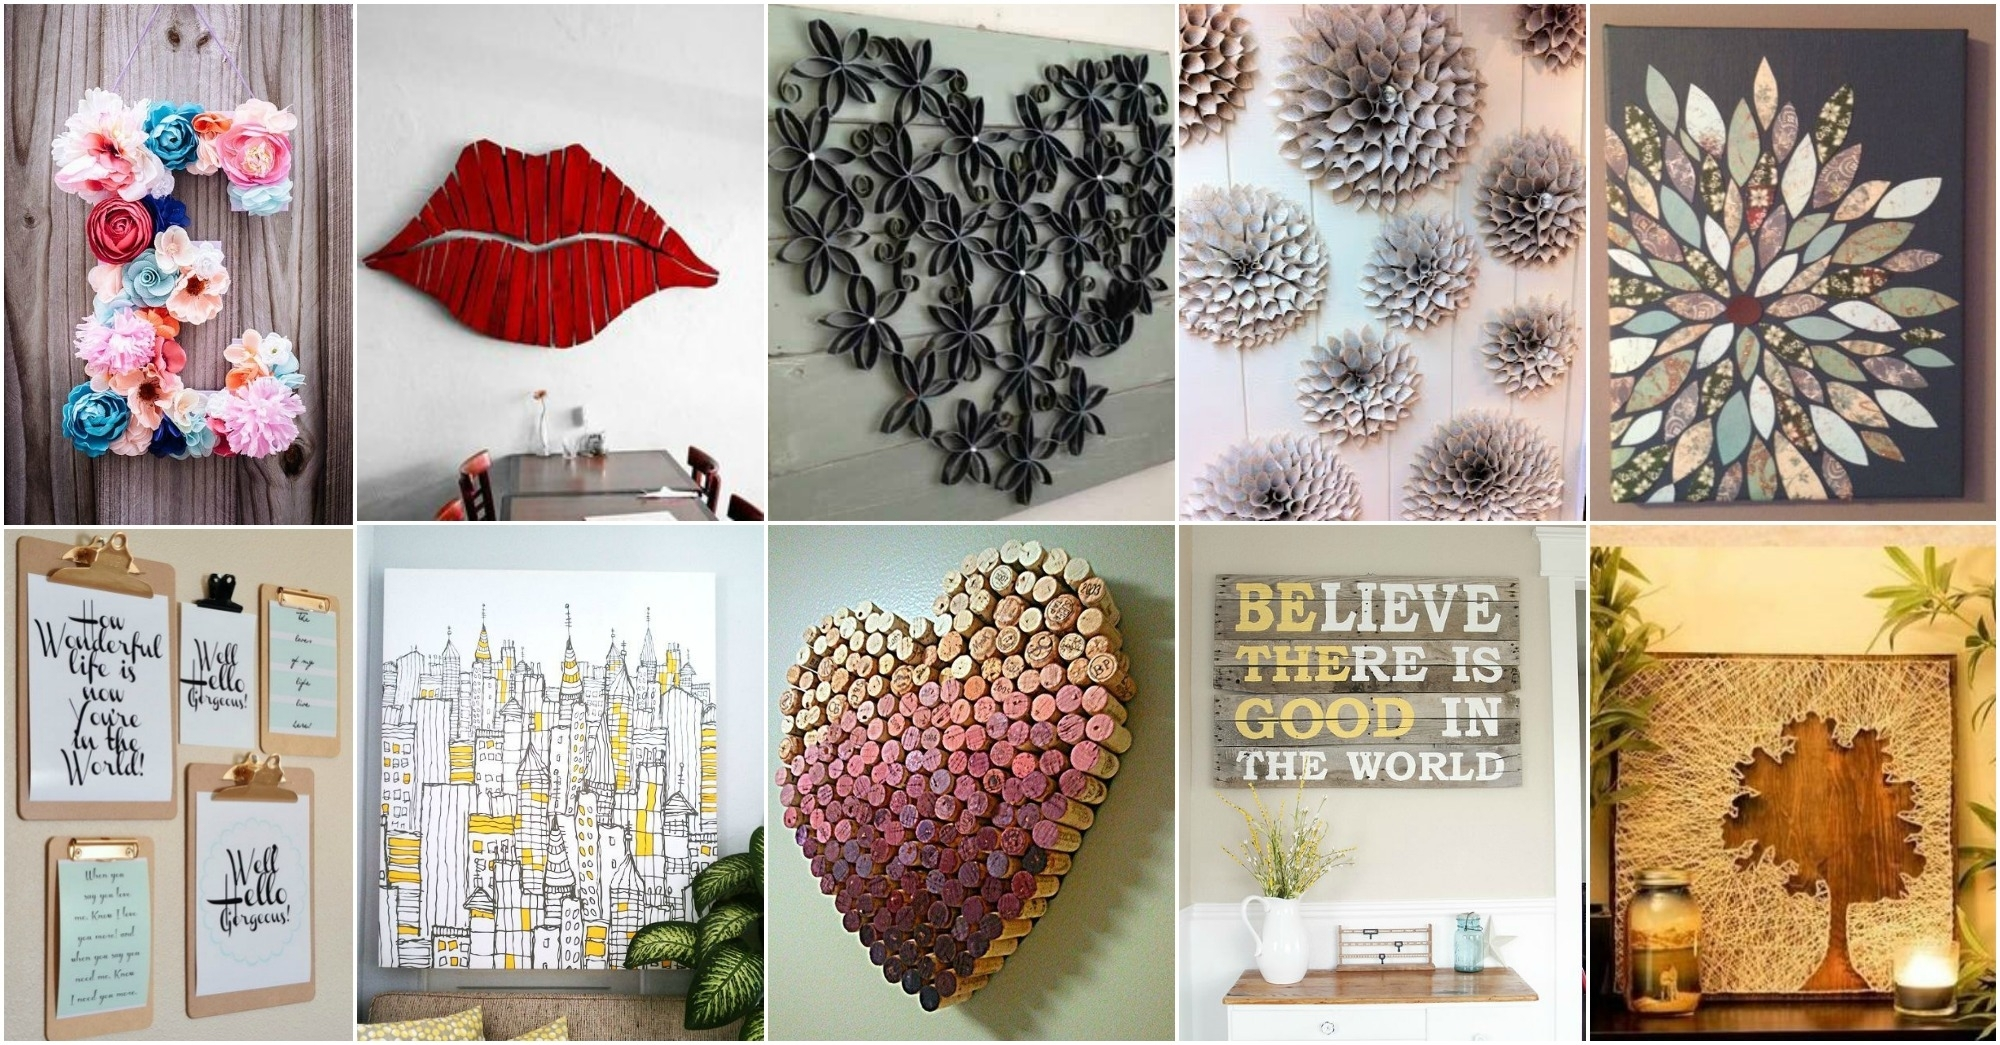 More Amazing Diy Wall Art Ideas Intended For Most Recent Wall Art Diy (Gallery 9 of 20)